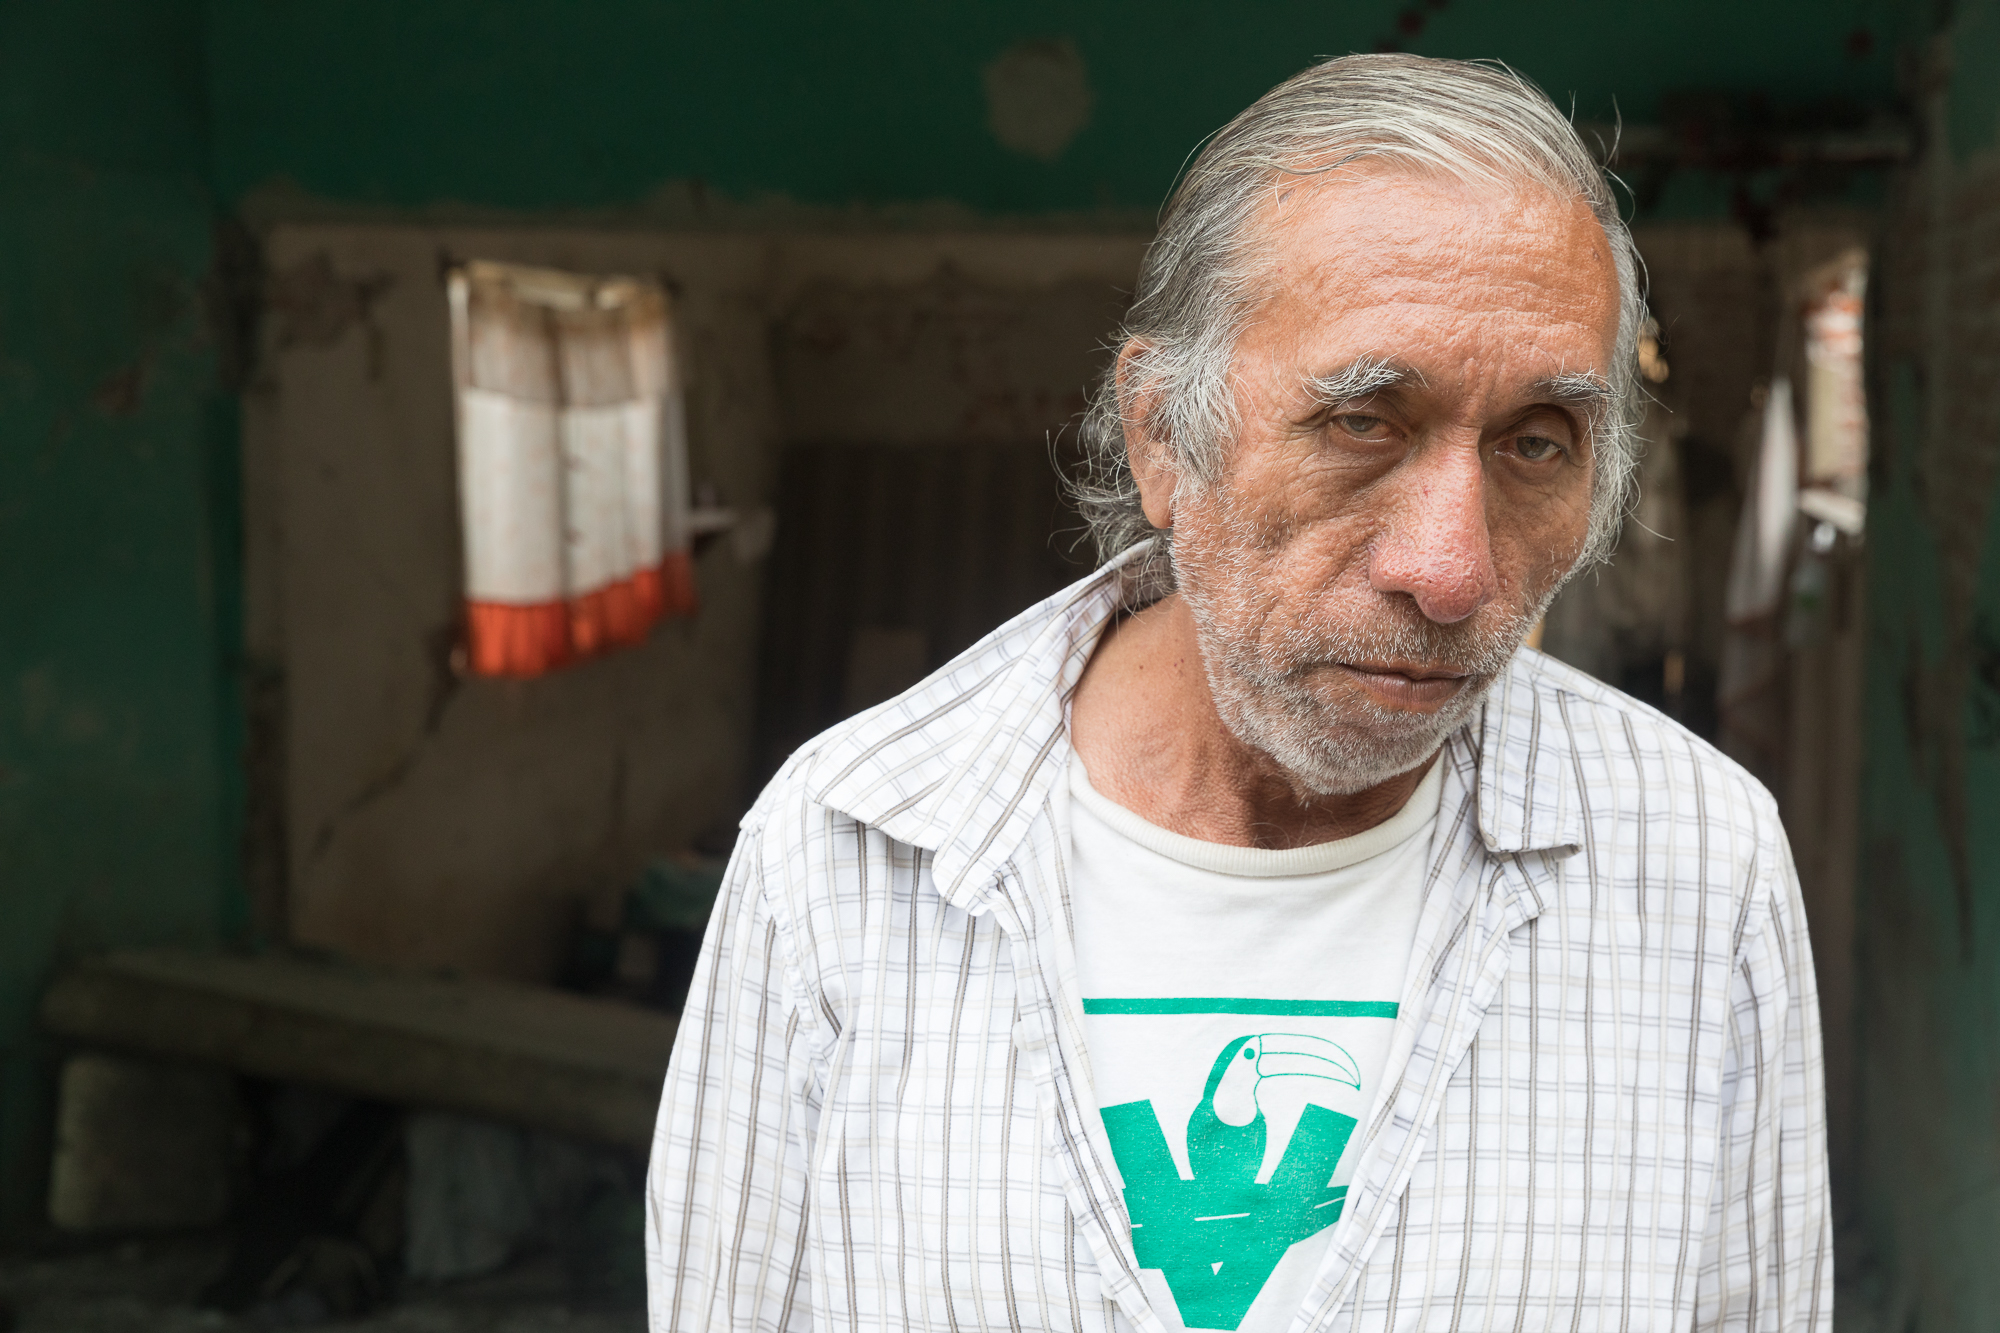 Álvaro Jaimes was able to get out of his small flat that he shares with his uncle Jesús Jaime. Now the place is completely uninhabitable. PHOTO: Francisco Alcala Torreslanda